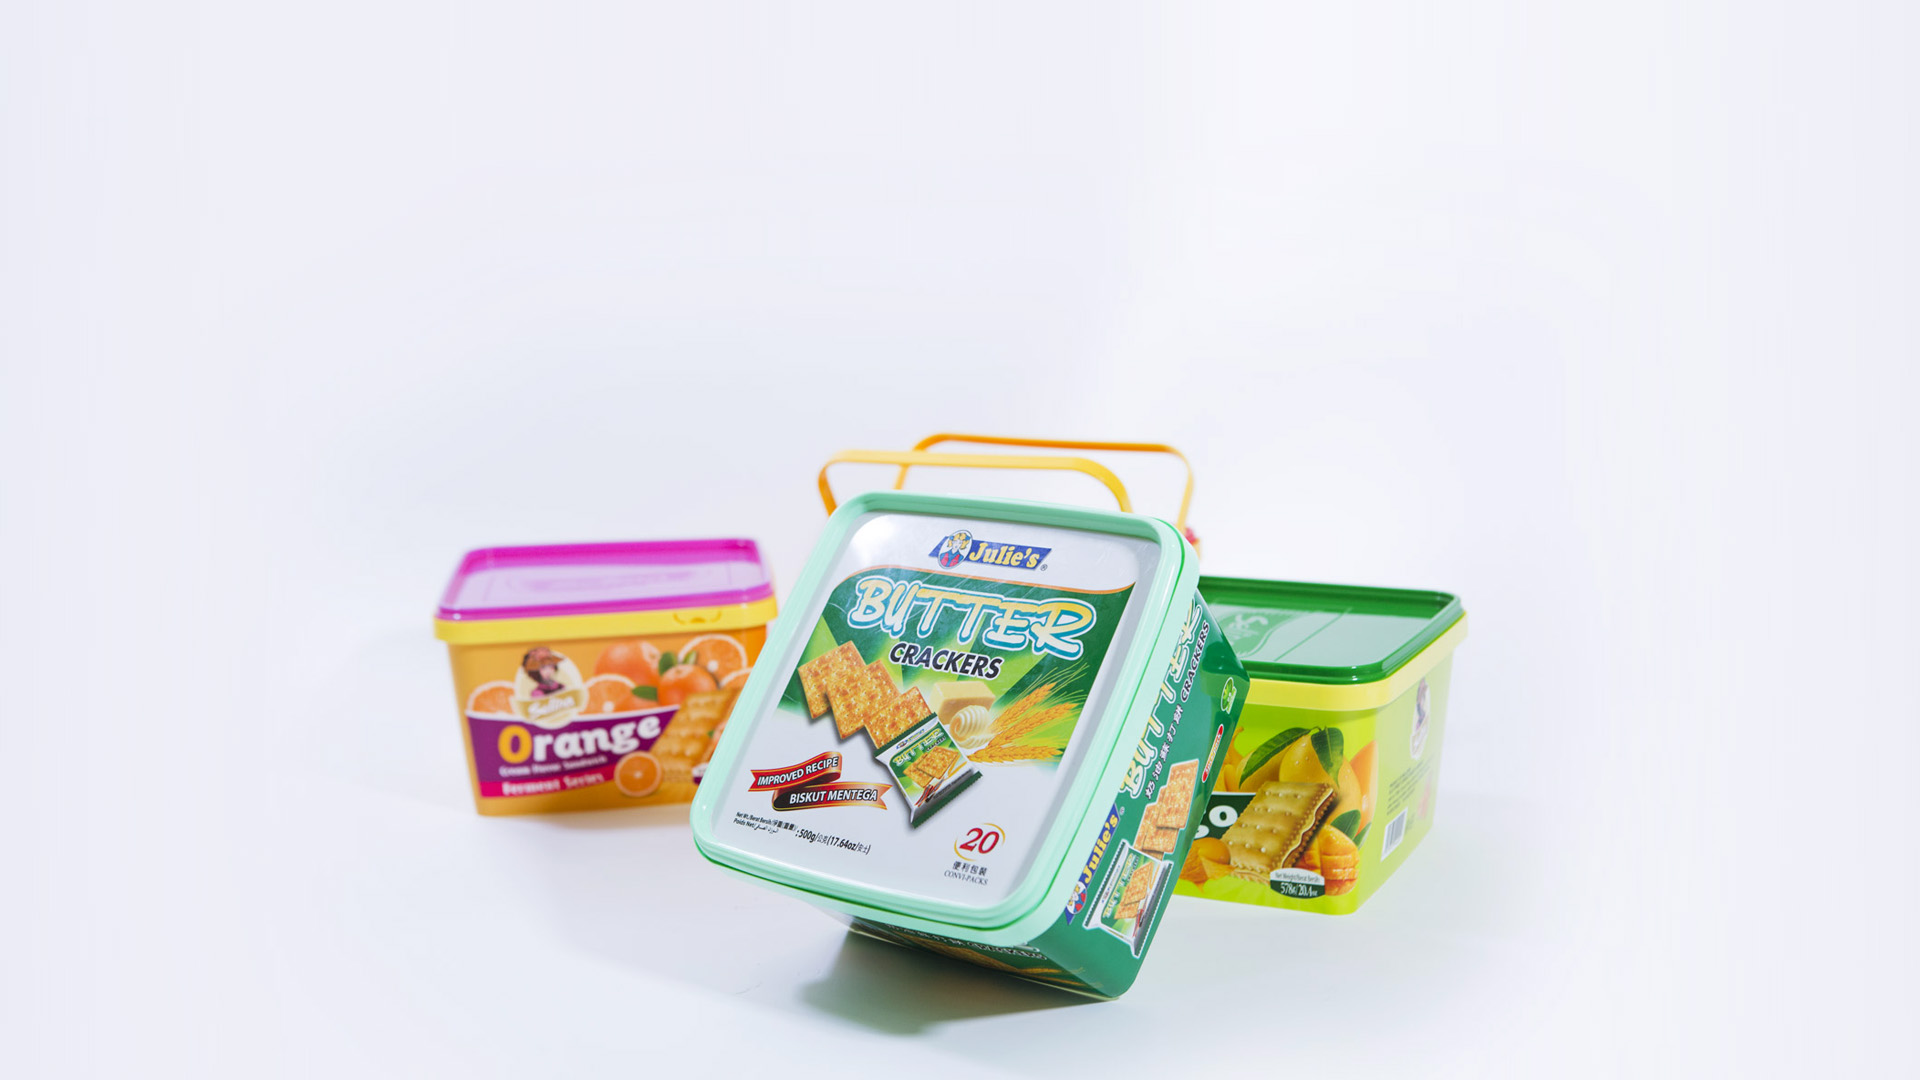 ACMEPAK PLASTIC PACKAGING, LTD